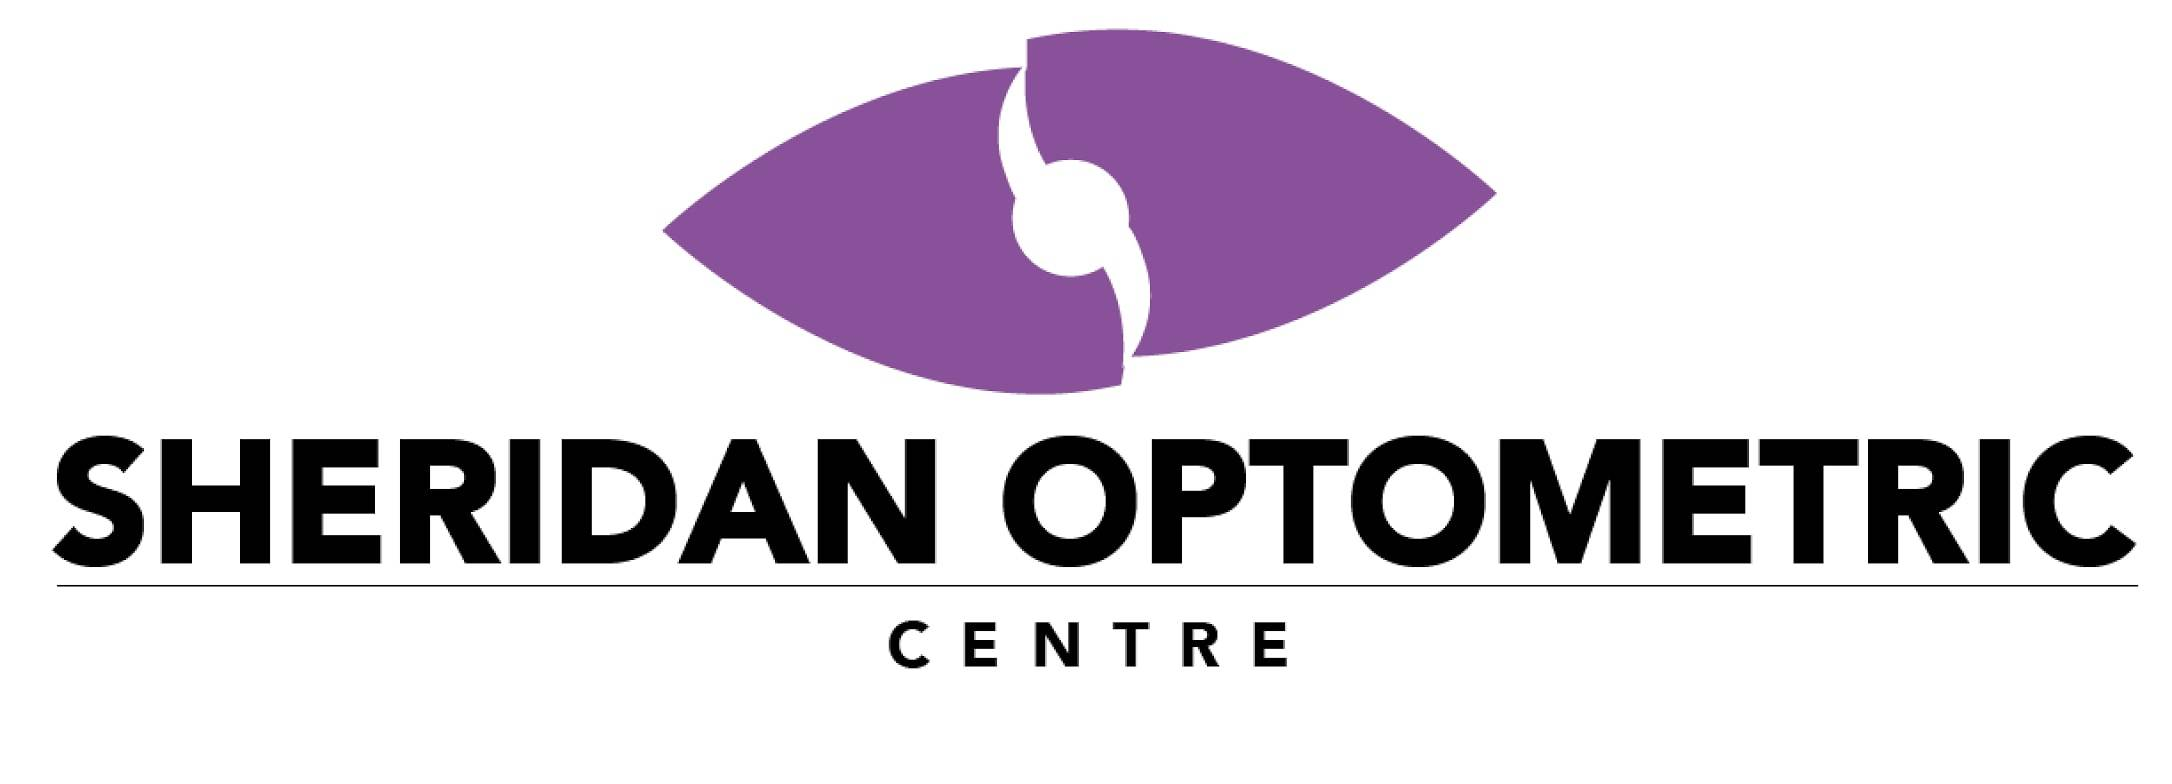 Sheridan Optometric Centre